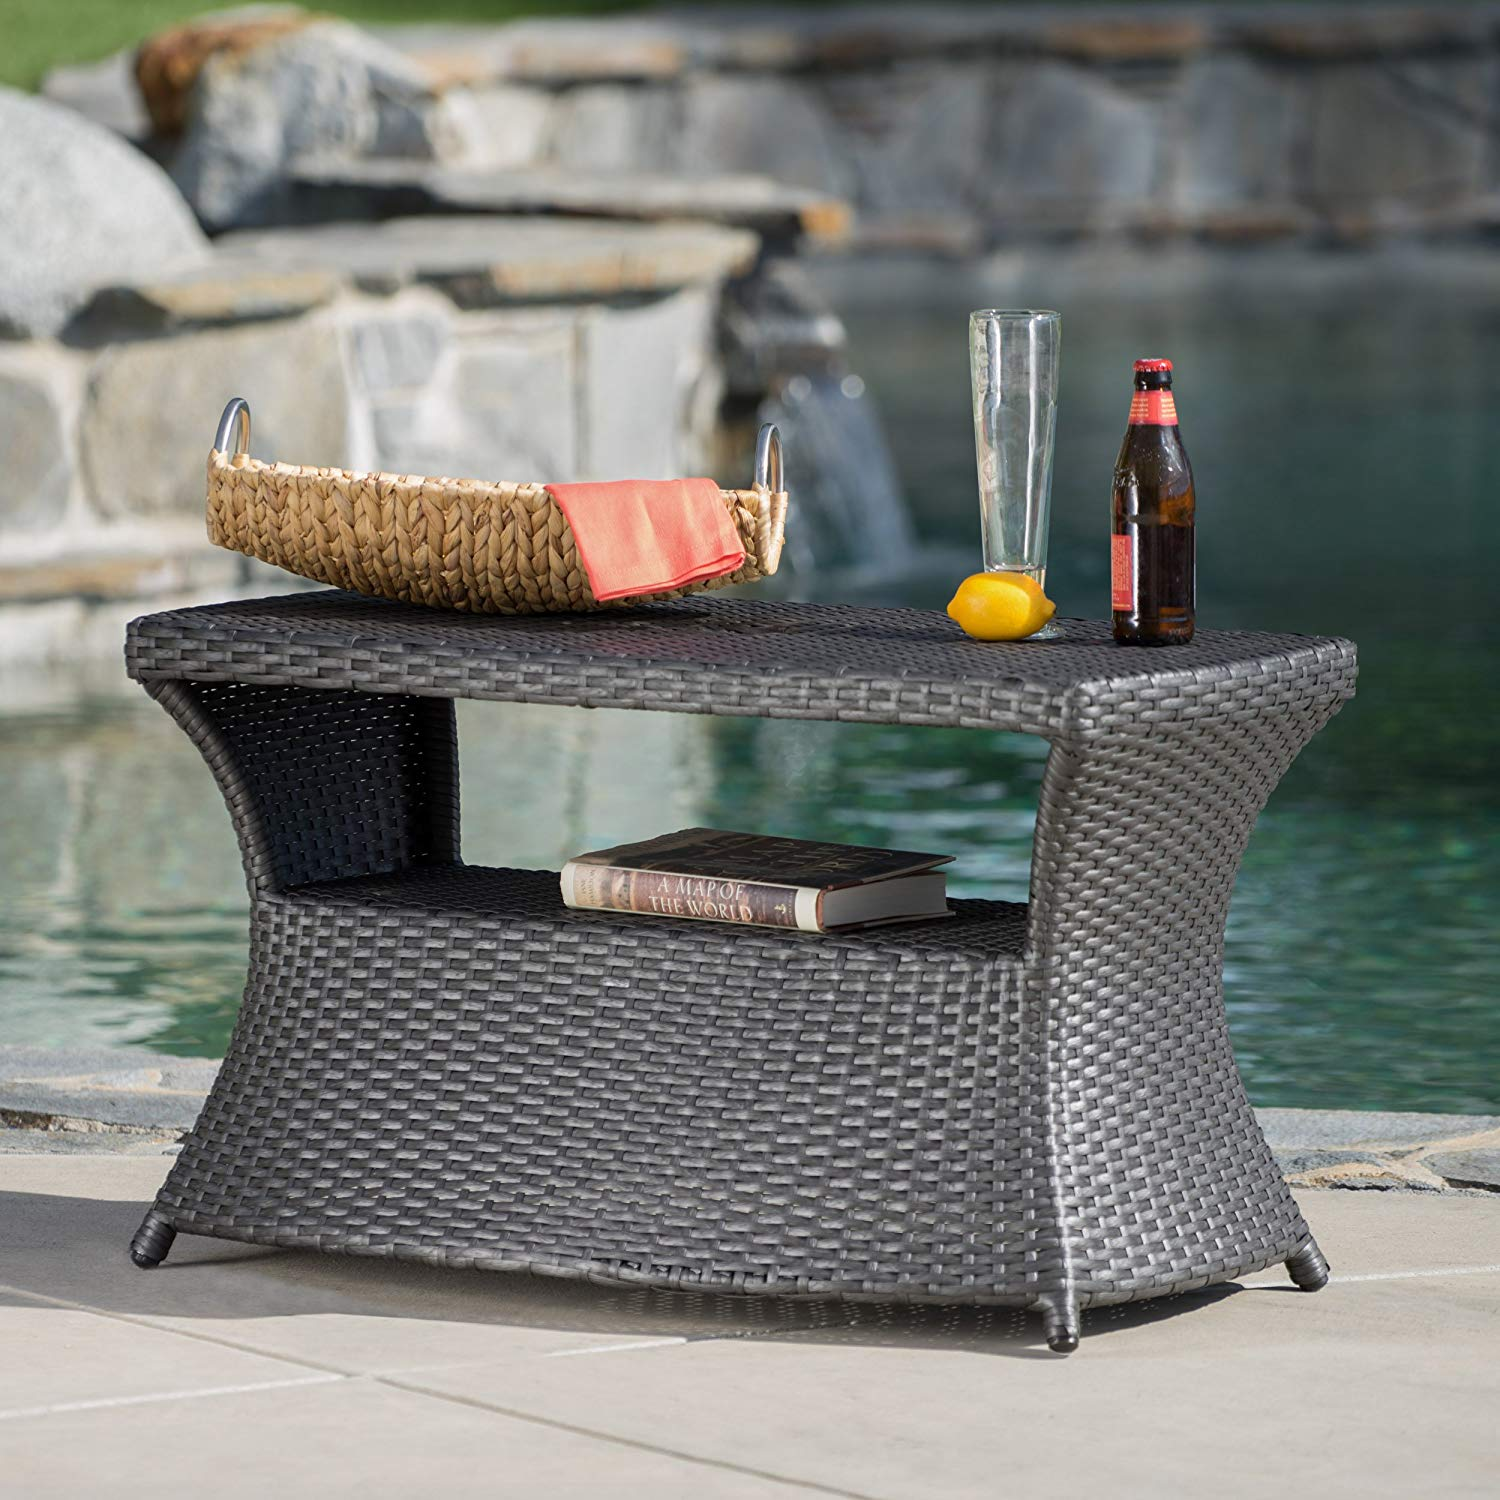 gdf studio banta outdoor wicker side table grey garden floor transitions for uneven floors coffee design ideas pier one lamps quilt runner patterns deck tables brown leather